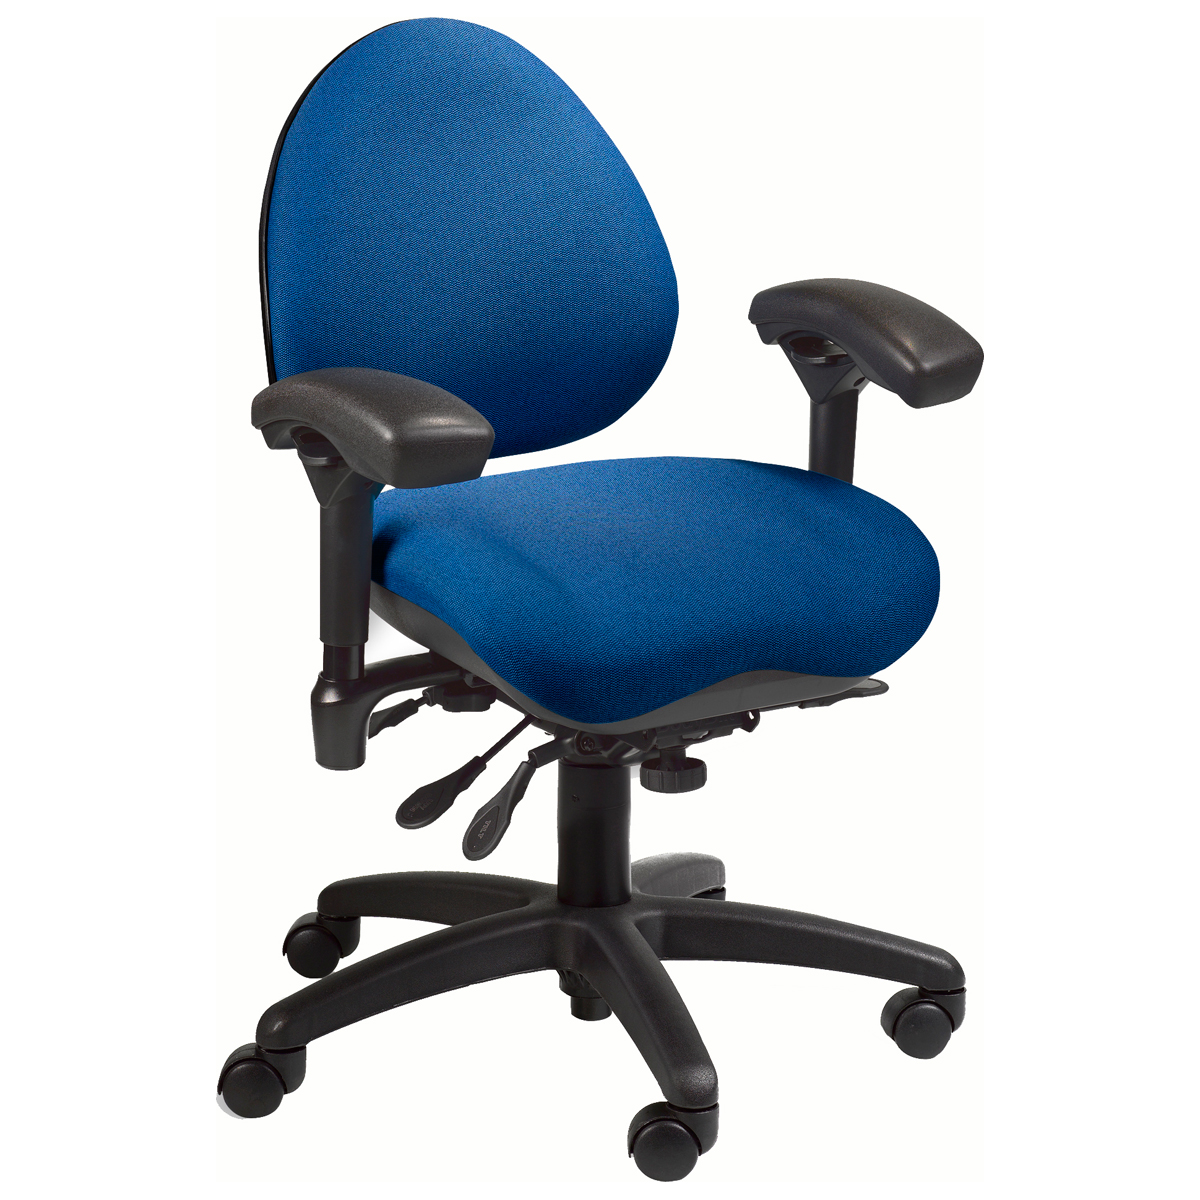 BodyBilt 752756757758 Ergonomic Task Chair  Shop